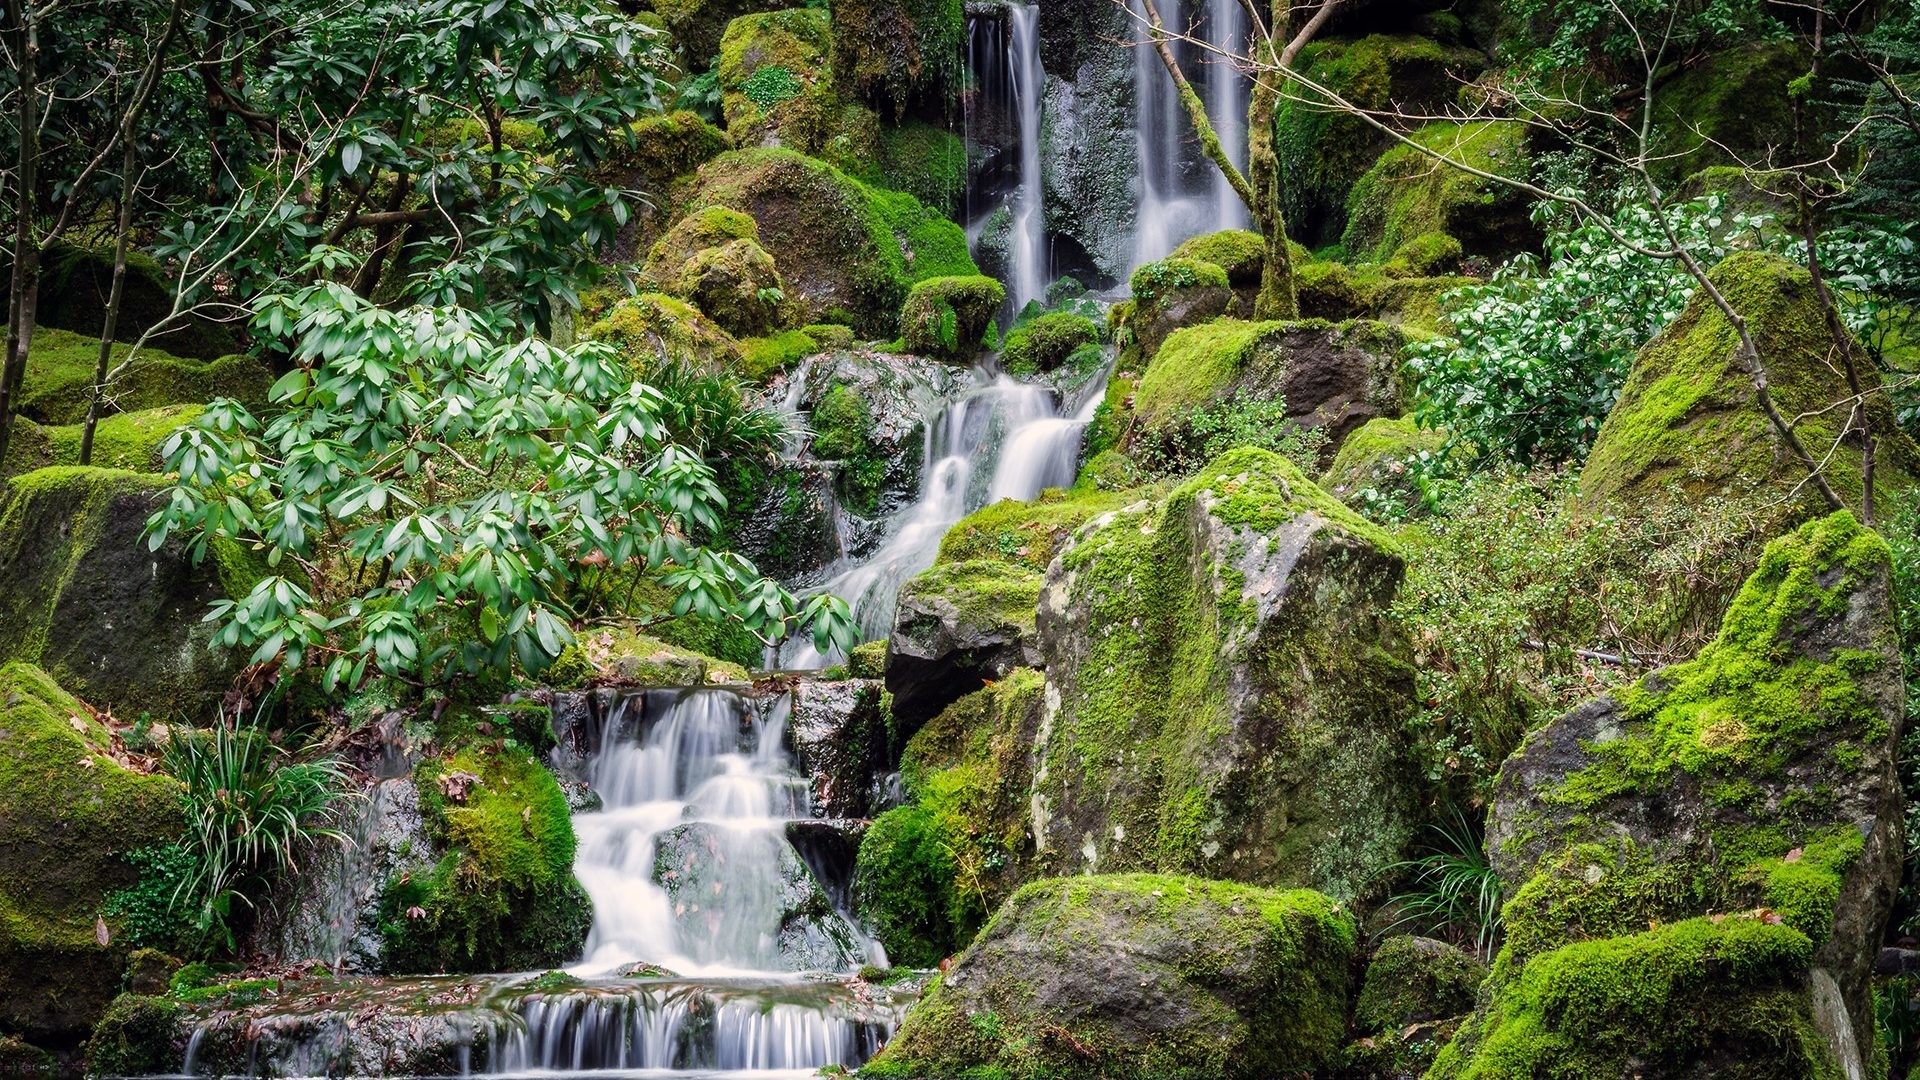 Japanese Tag – Gardens Waterfalls Japanese Nature Parks Hd Waterfall for HD  16:9 High